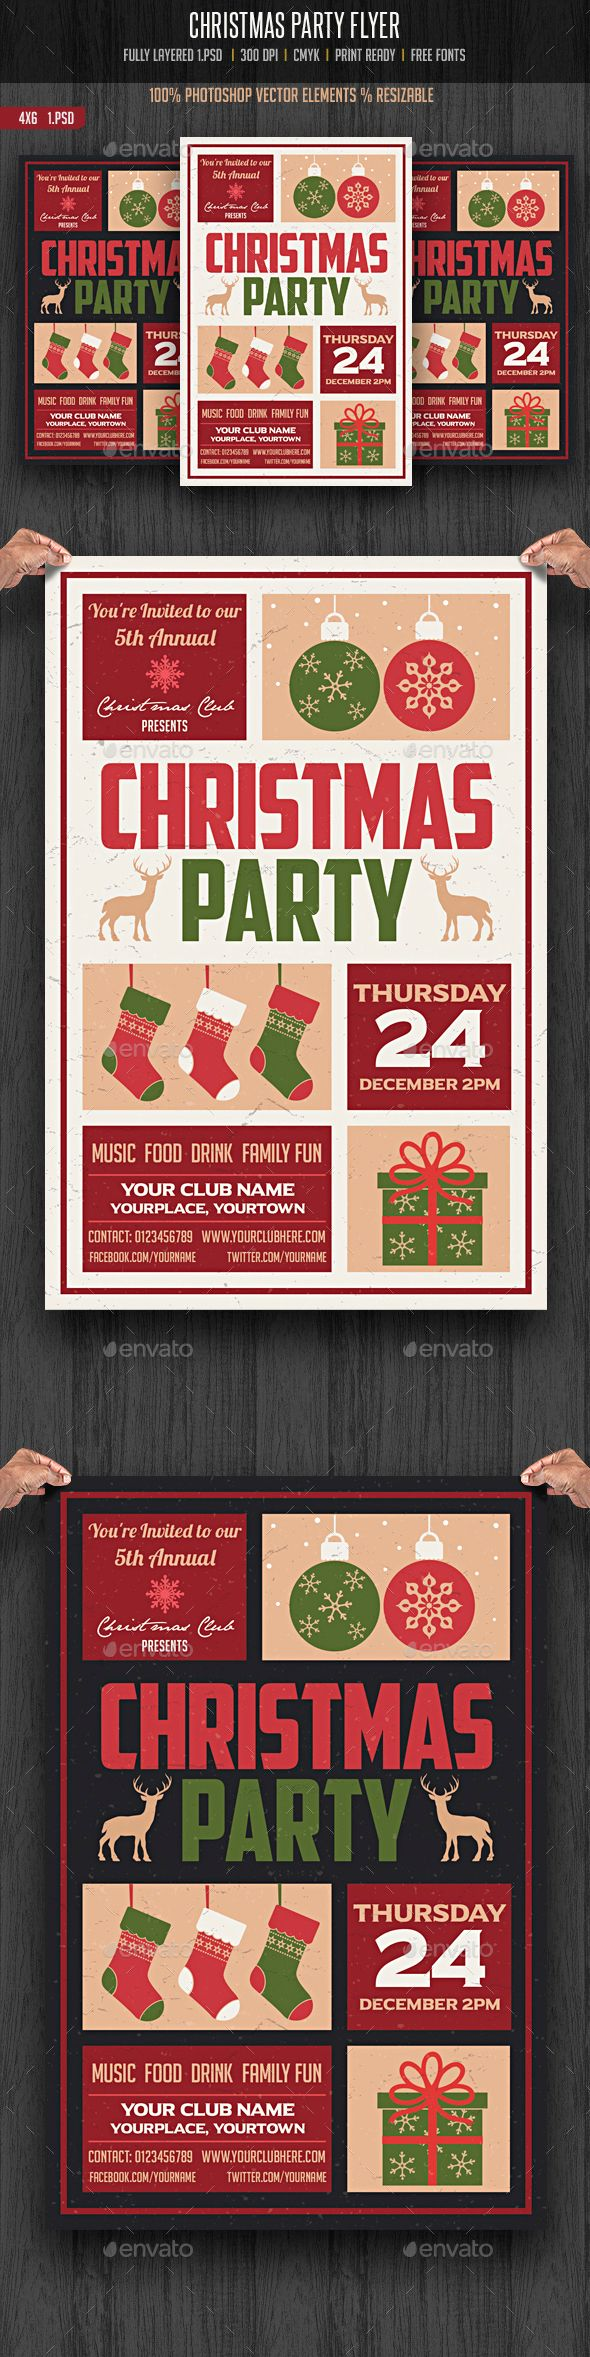 Christmas Party Flyer Template PSD #design #xmas Download: http://graphicriver.net/item/christmas-party-flyer/13535954?ref=ksioks